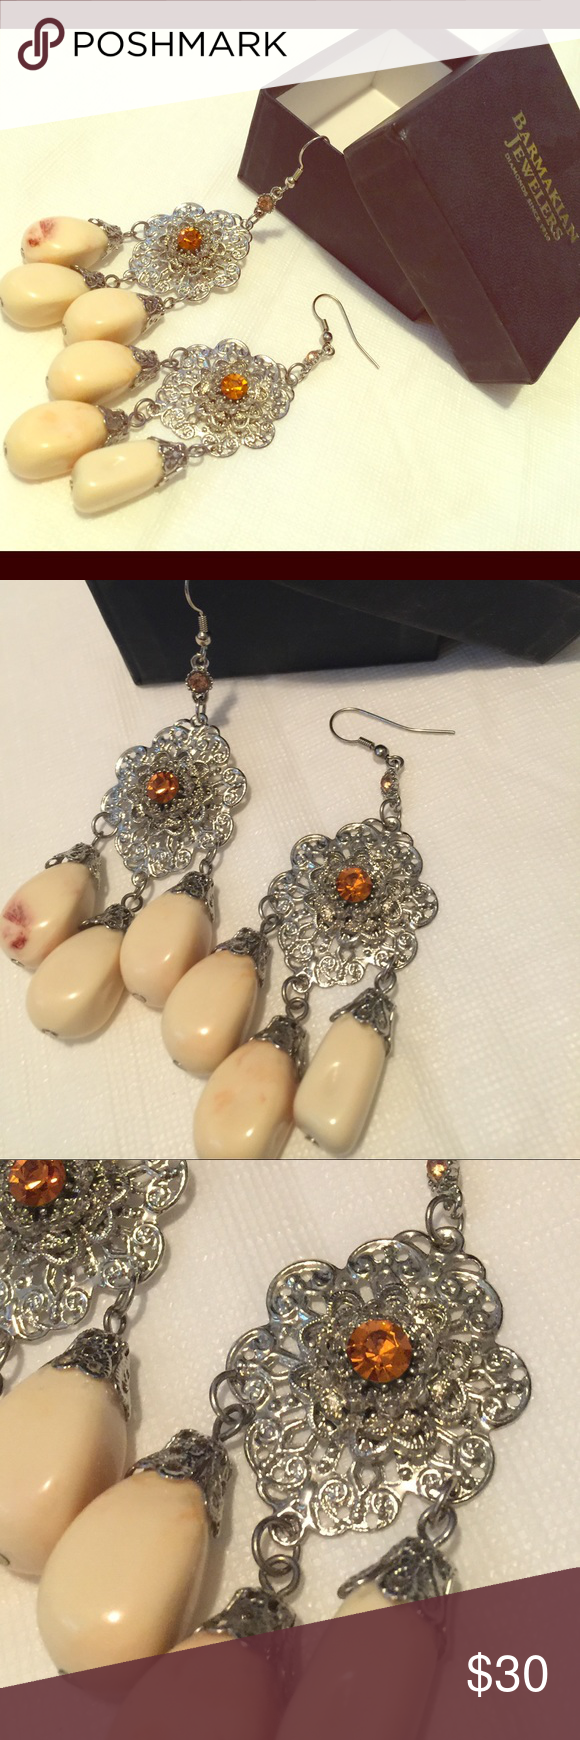 Gorgeous Chandelier Earrings These are so beautiful, a bit over priced but so worth every cent; when you put them on you'll see what I mean! Jewelry Earrings